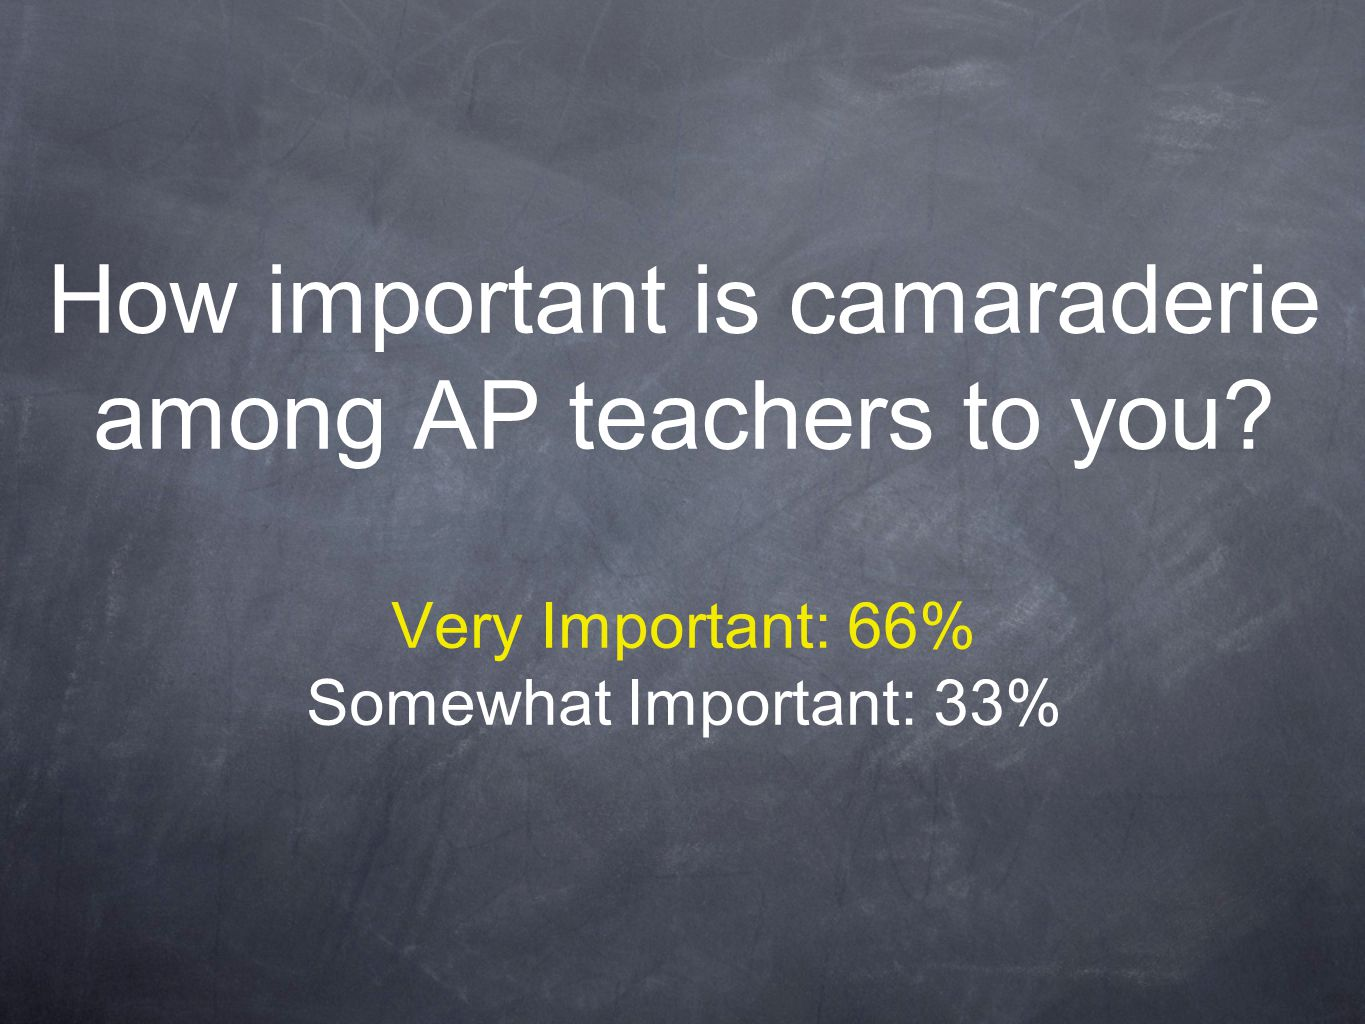 How important is camaraderie among AP teachers to you? Very Important: 66% Somewhat Important: 33%